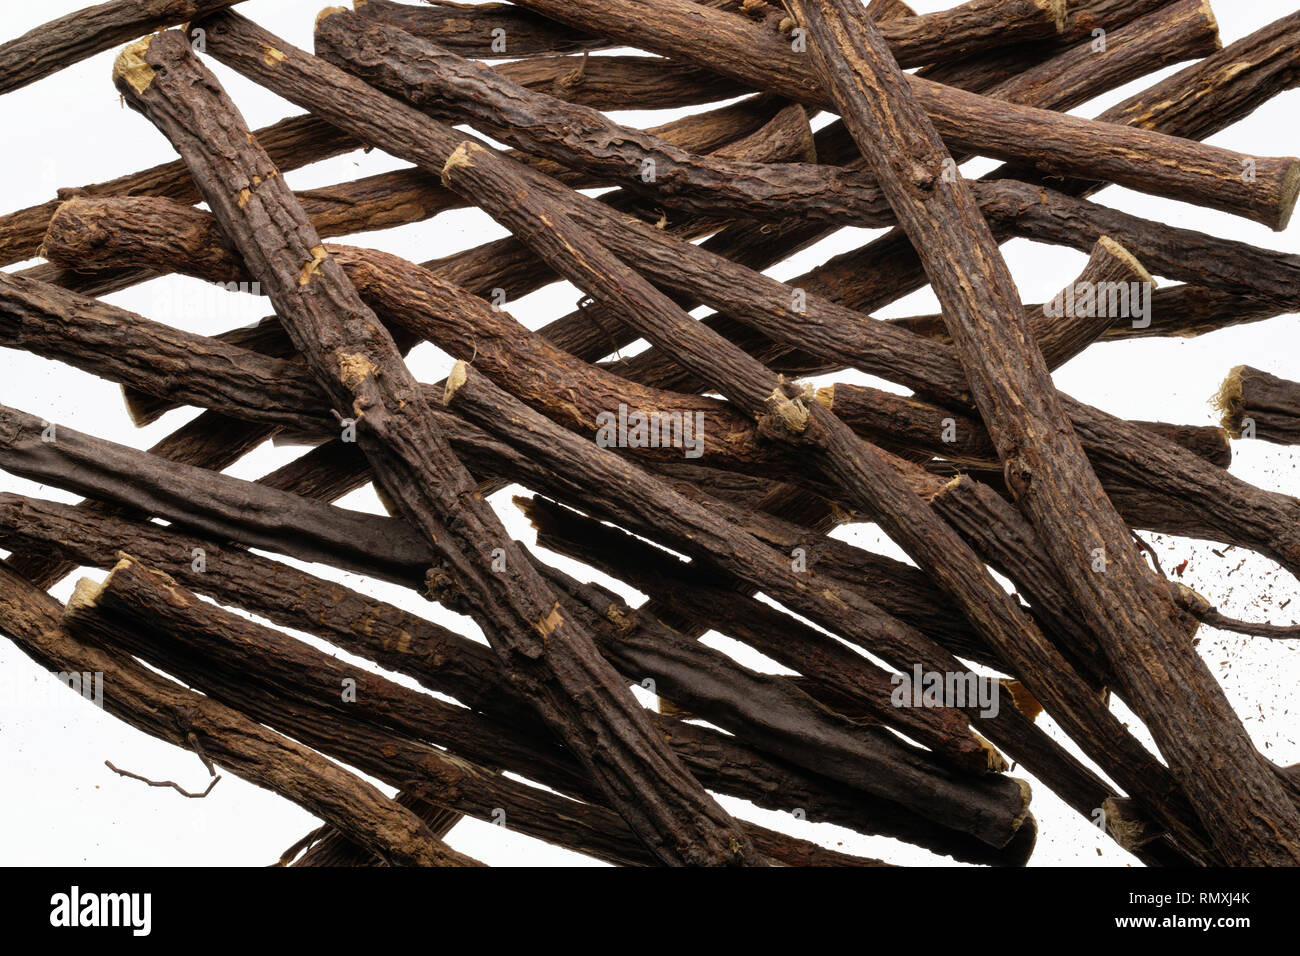 Liquorice root sticks from Asia, used for flavouring in cooking or confectionery. - Stock Image